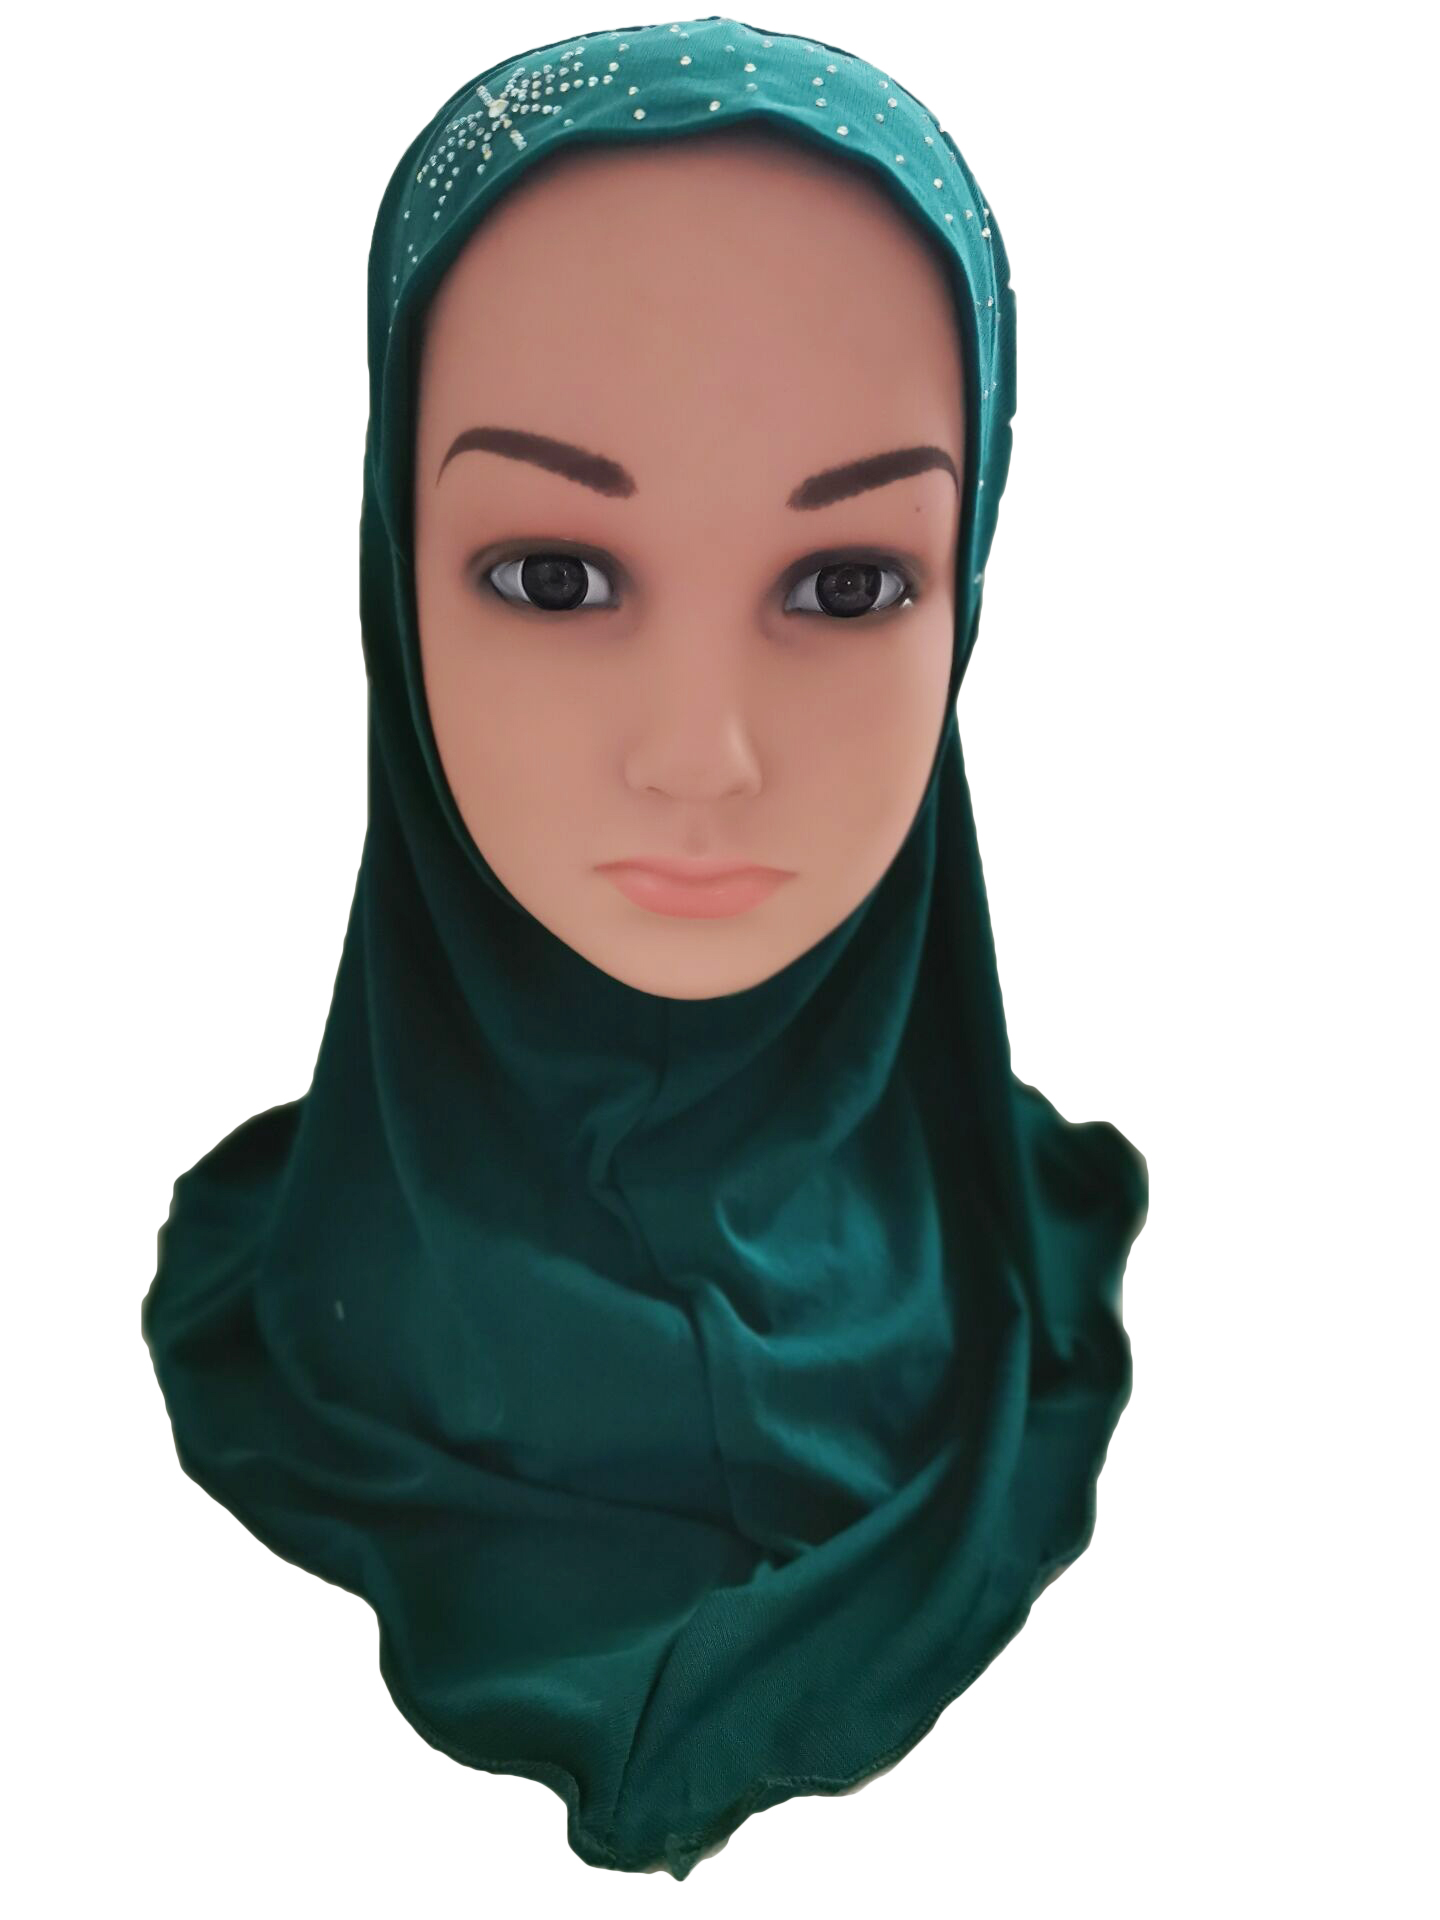 Girls-Kids-Muslim-Hijab-Hats-Islamic-Arab-Scarf-Caps-Shawls-Amira-Headwear-3-8Y thumbnail 96